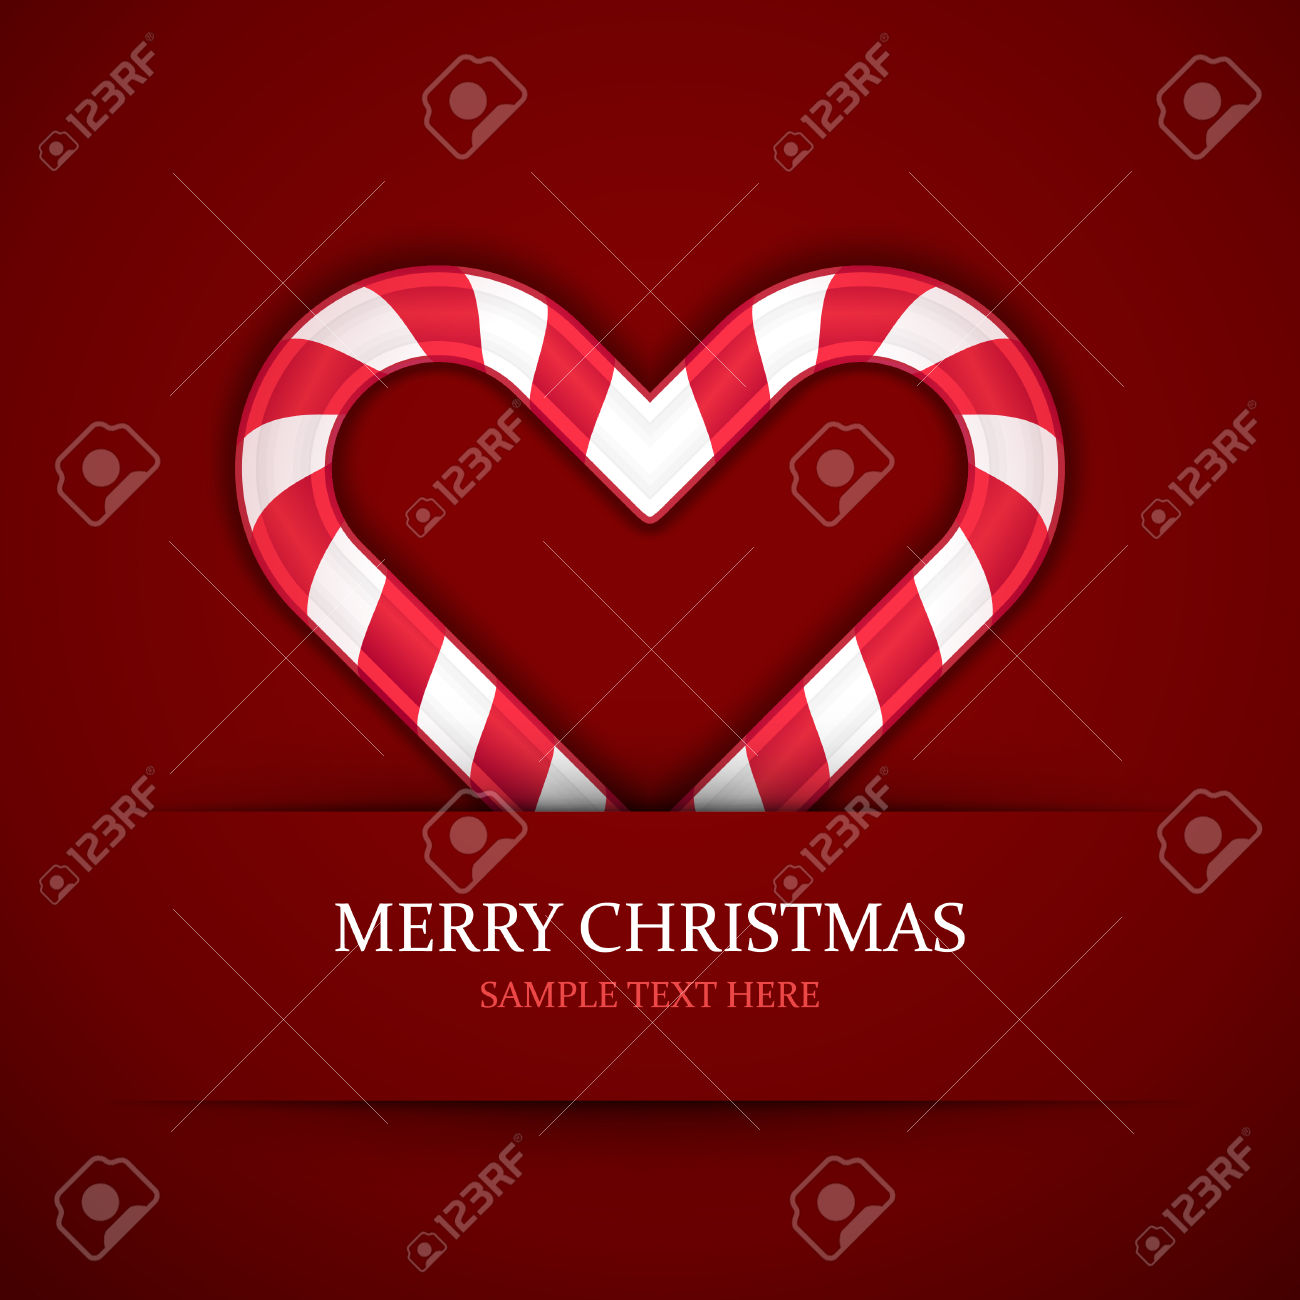 Free clipart of christmas candy hearts png black and white library Christmas Candy Heart Vector Background Christmas Card Or ... png black and white library